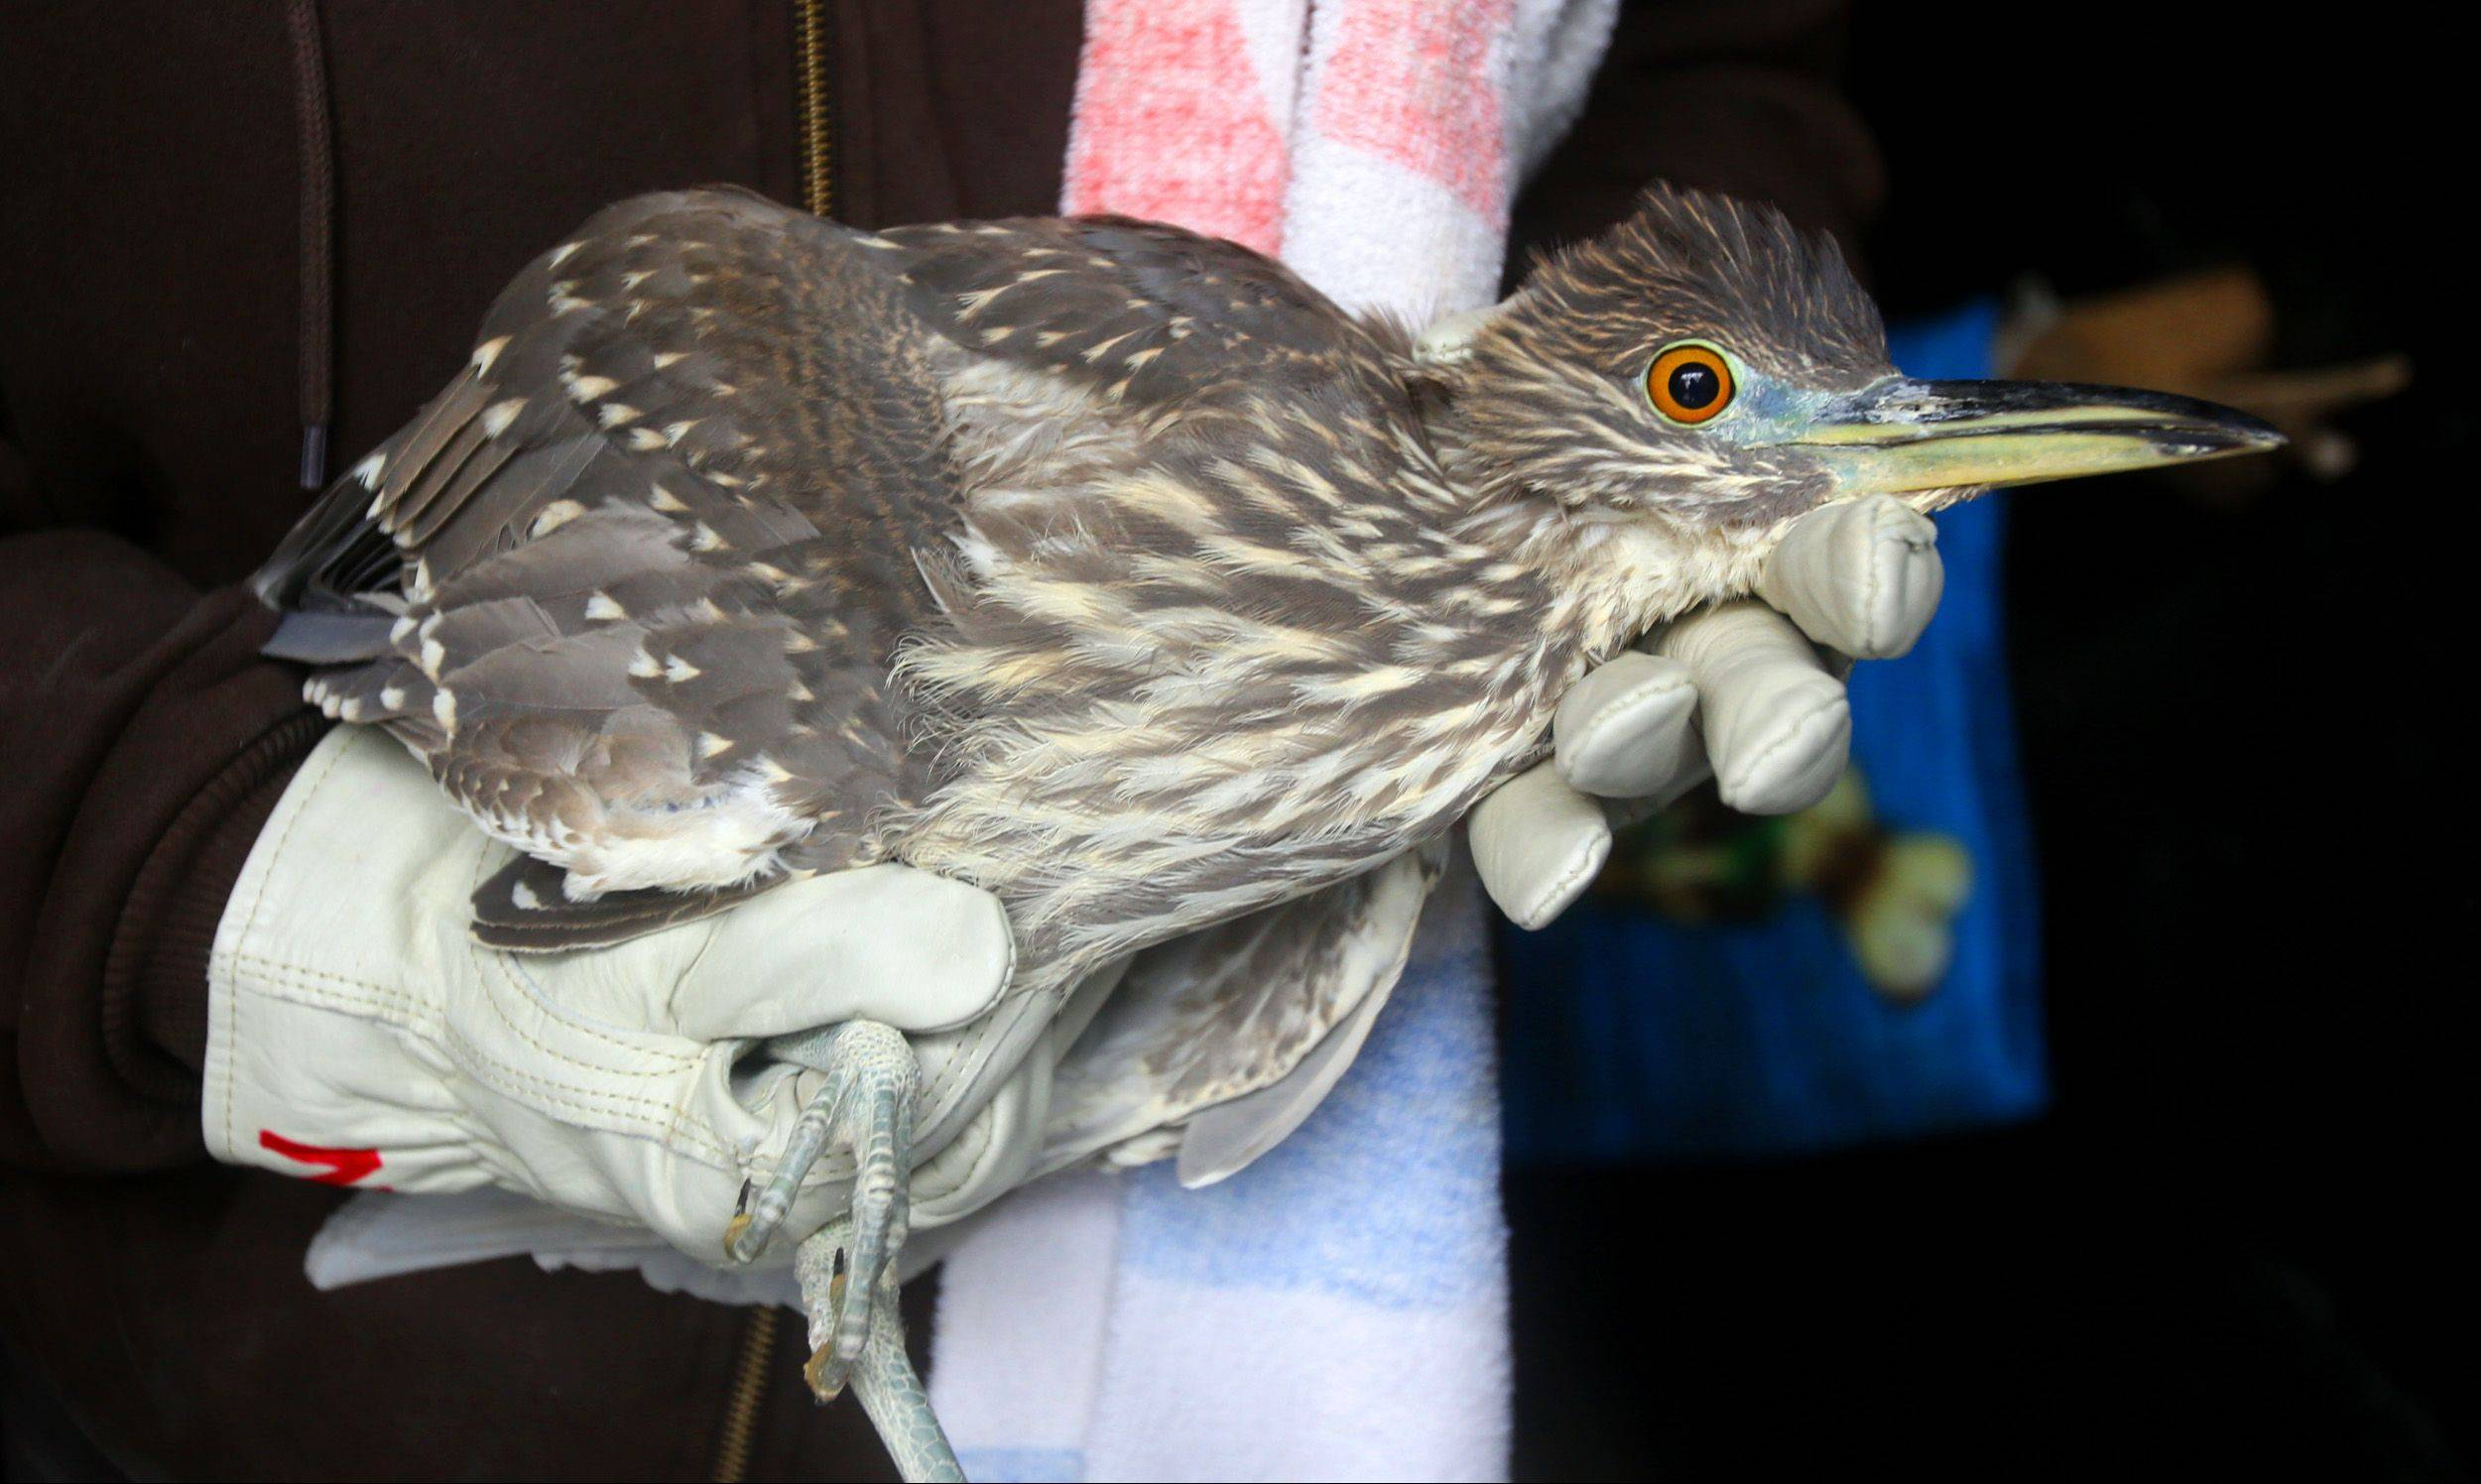 A black-crowned night heron was returned to its enclosure Thursday at Willowbrook Wildlife Center after being brought indoors to protect it from this week's extreme cold.